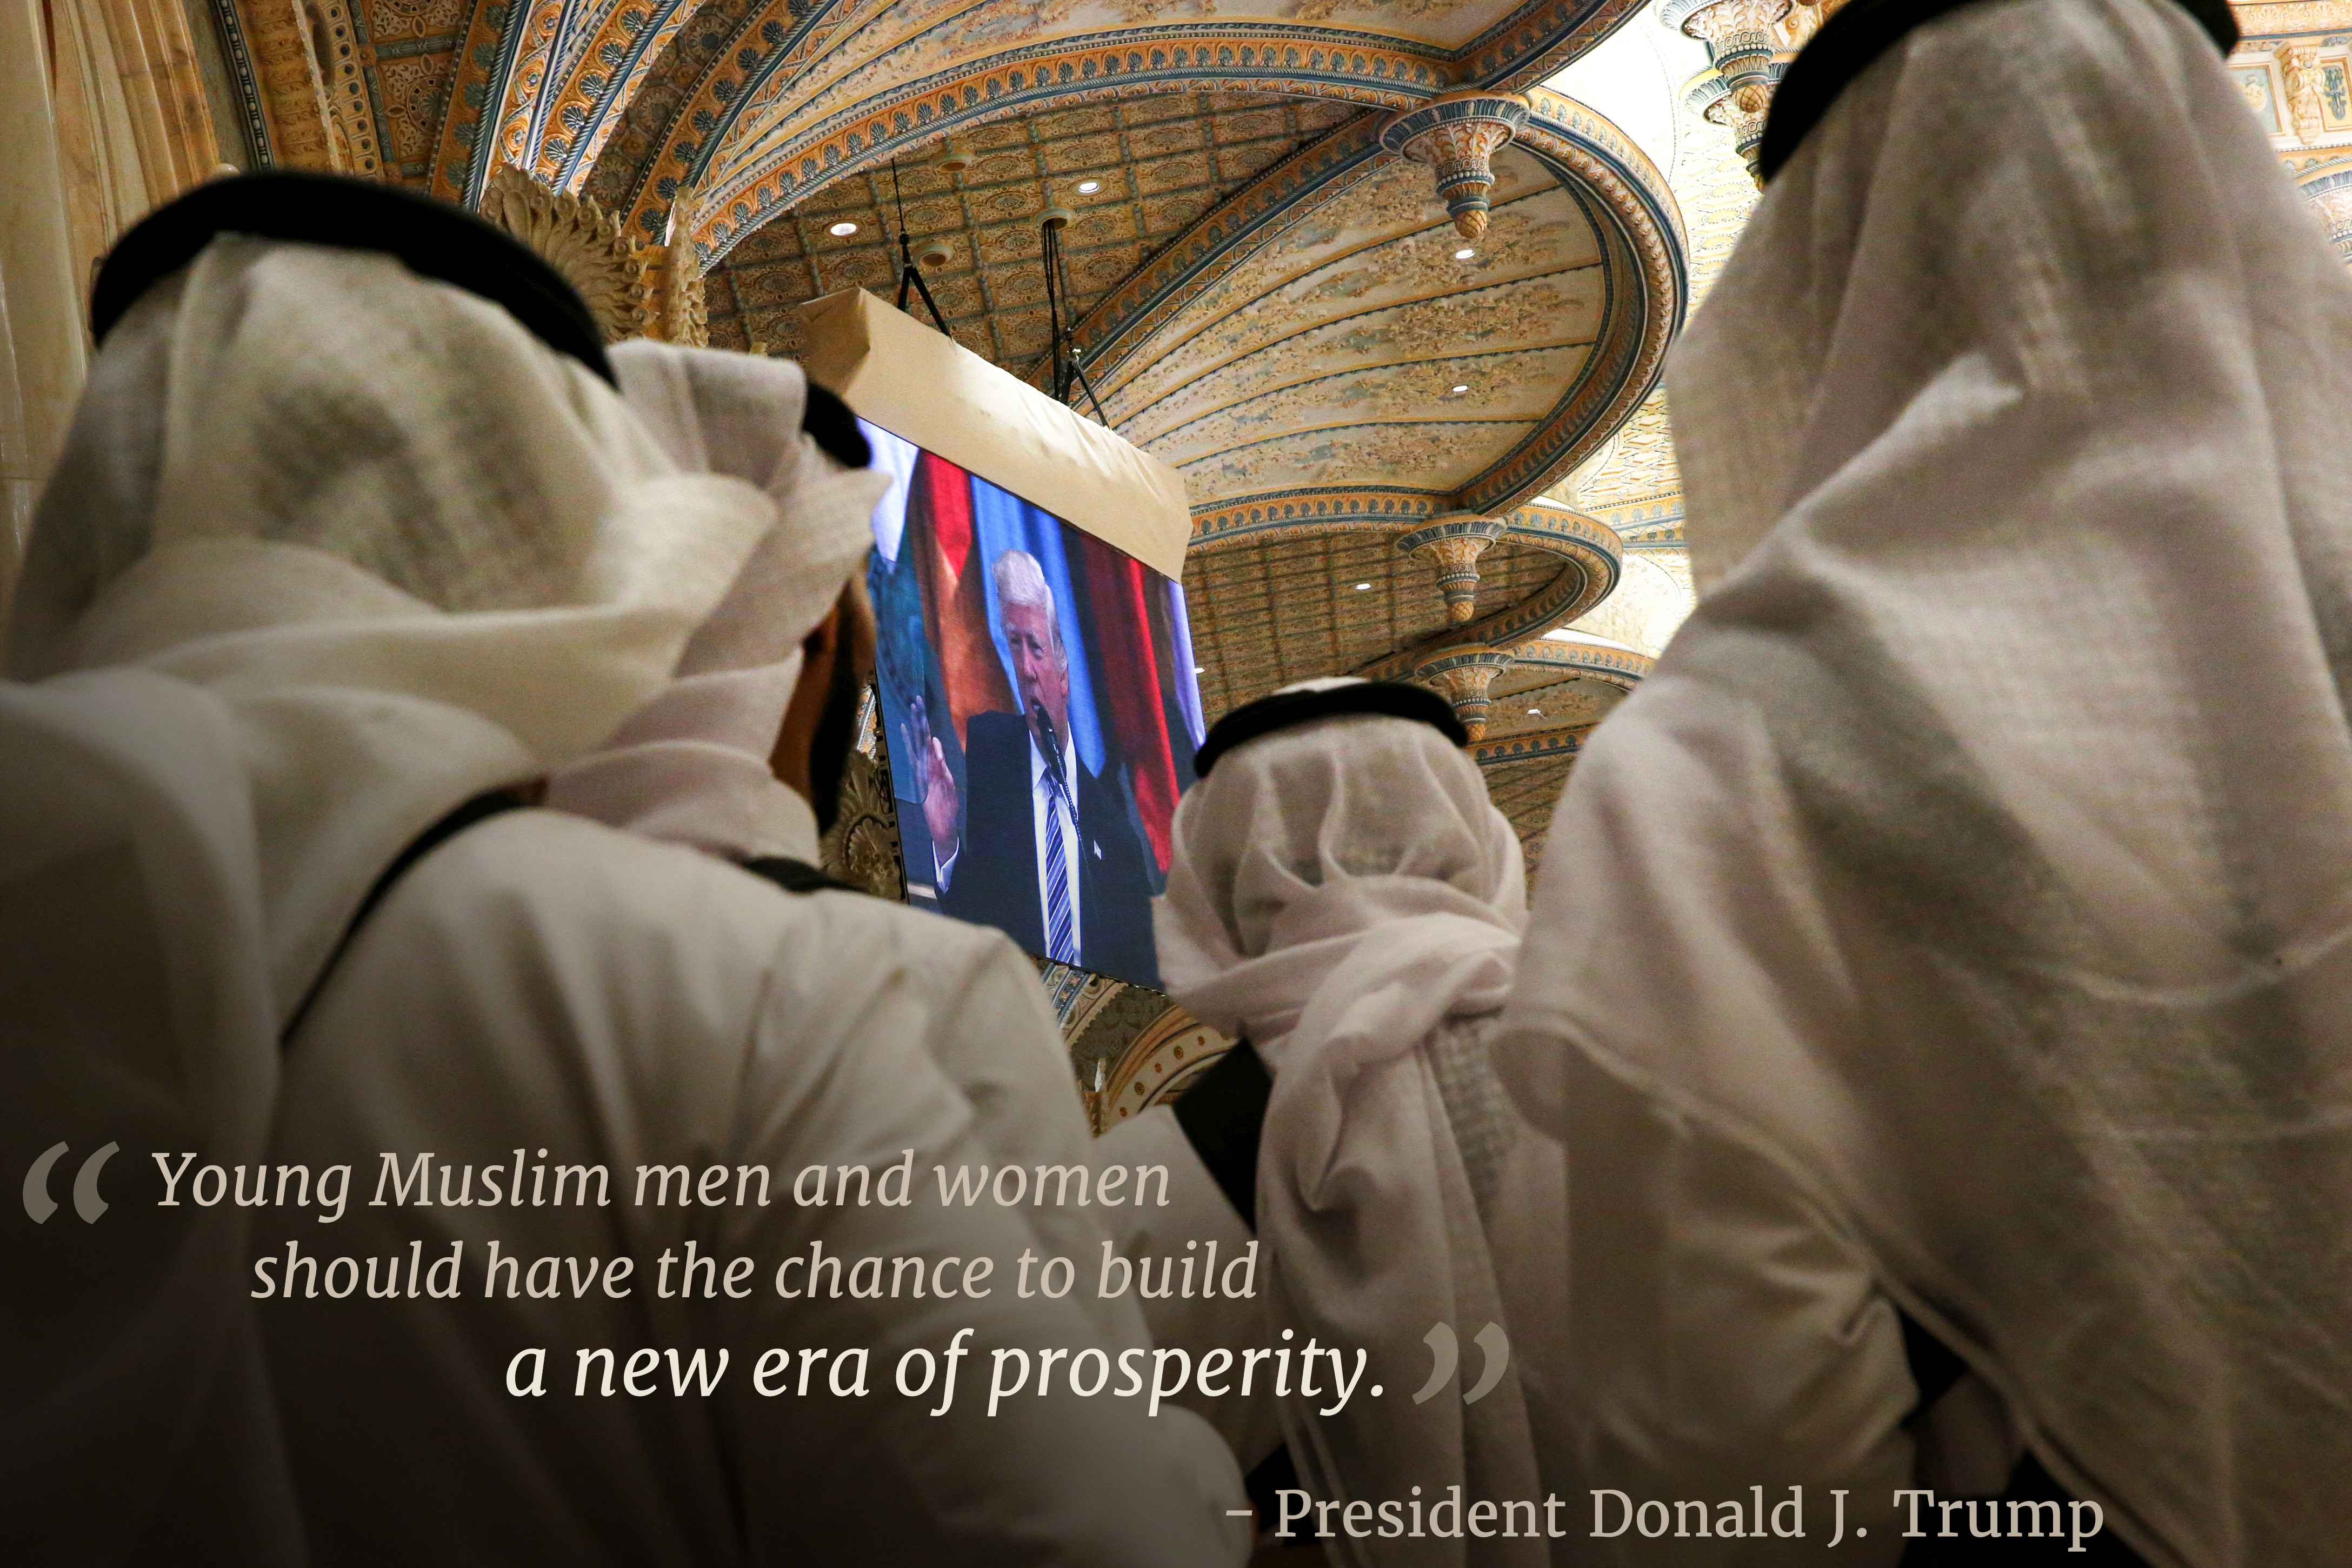 People watching President Trump on TV with overlaid text 'Young Muslim men and women should have the chance to build a new era of prosperity' (Jonathan Ernst/REUTERS)